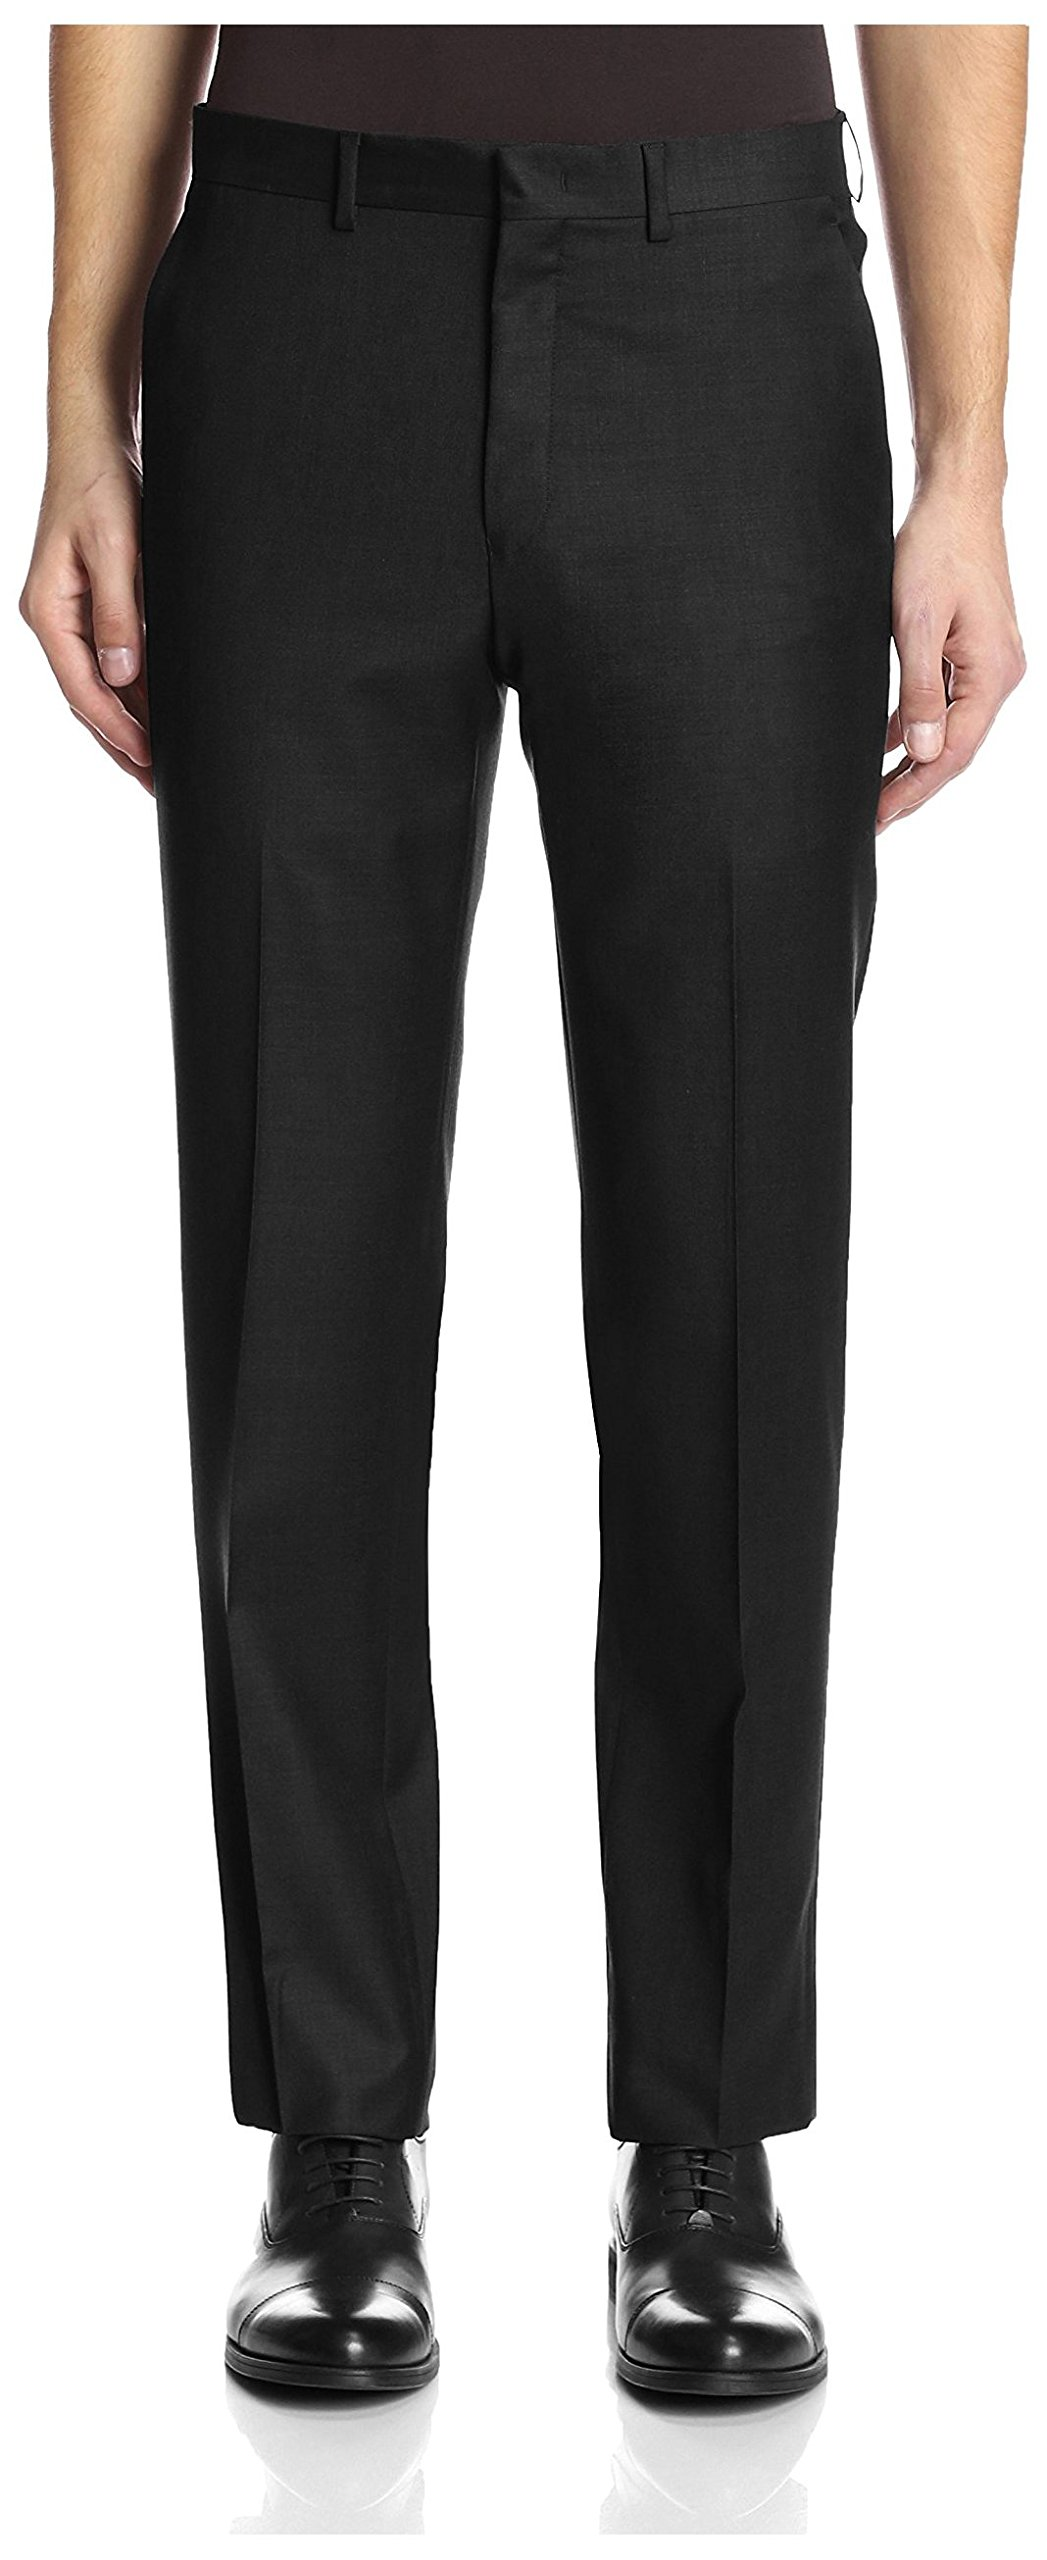 Franklin Tailored Men's Solid Trousers, Black, 34 US